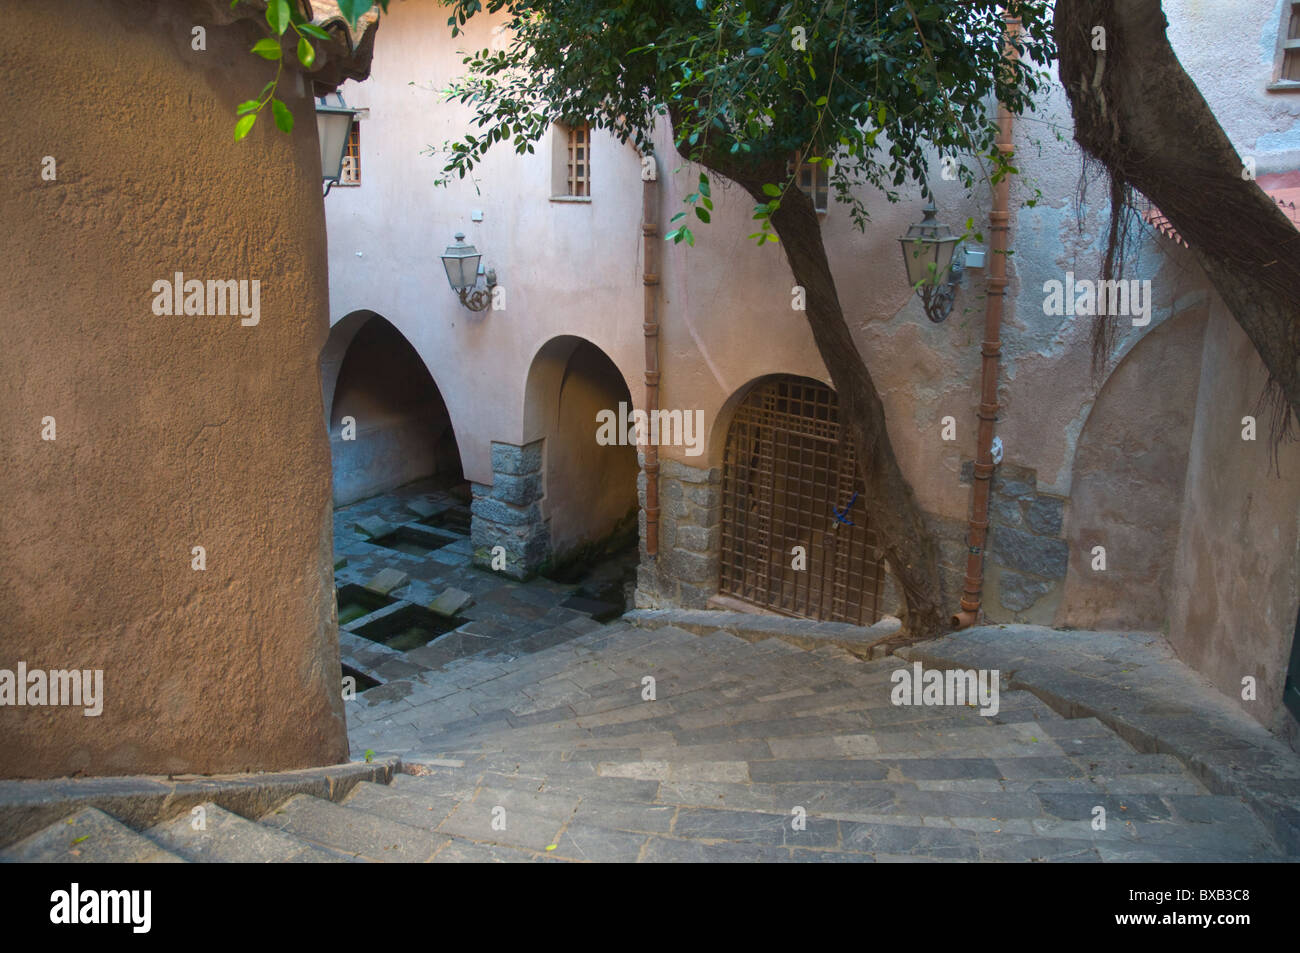 Lavatoio Medievale the medieval public laundry from 17th century central Cefalu town Sicily Italy Europe Stock Photo